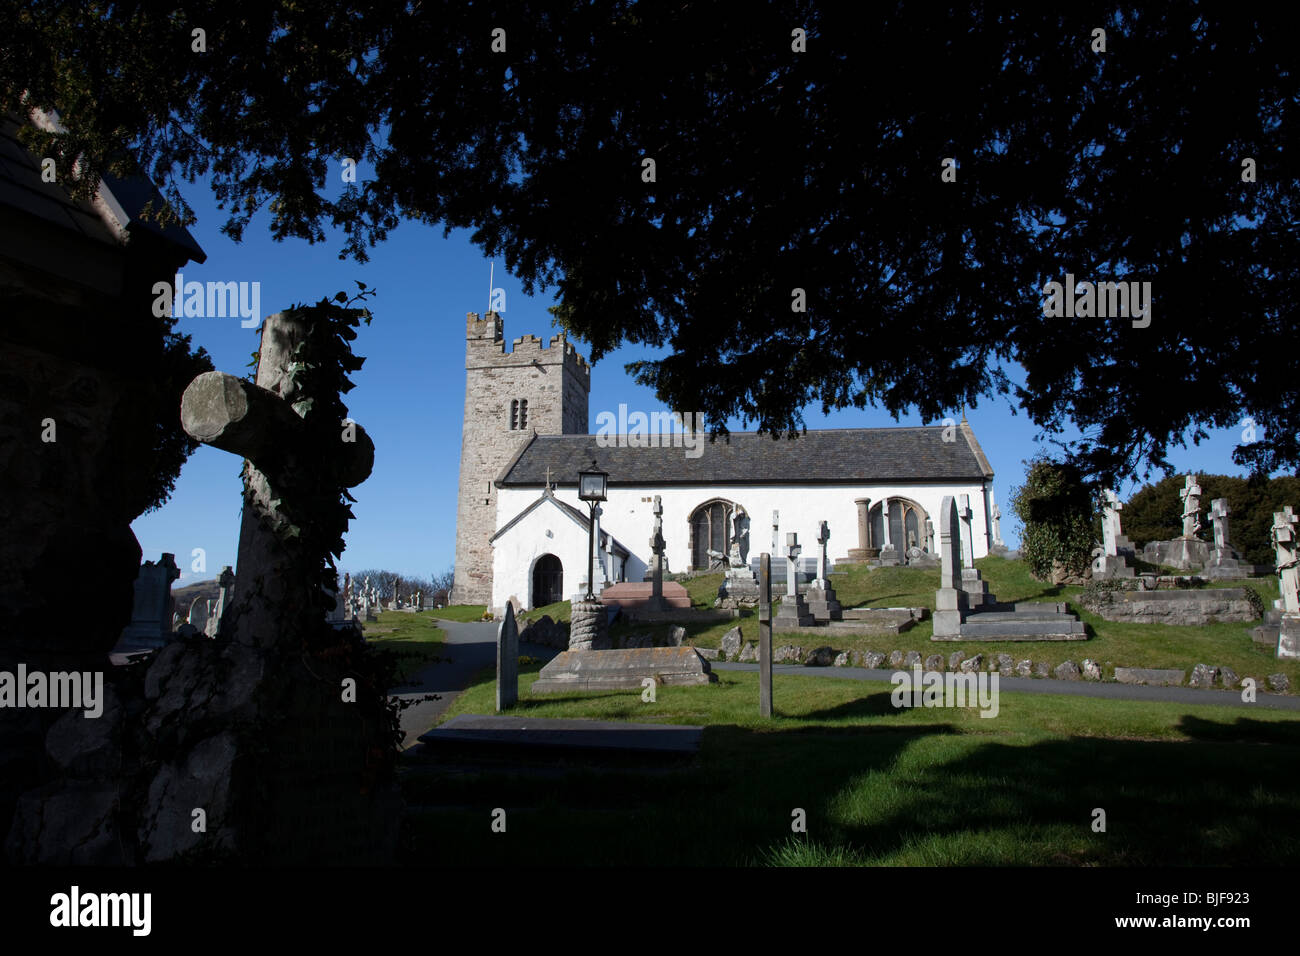 The 13th century Welsh church of St Trillo in the ancient parish of Llandrillo-yn-Rhos dating from1254. - Stock Image